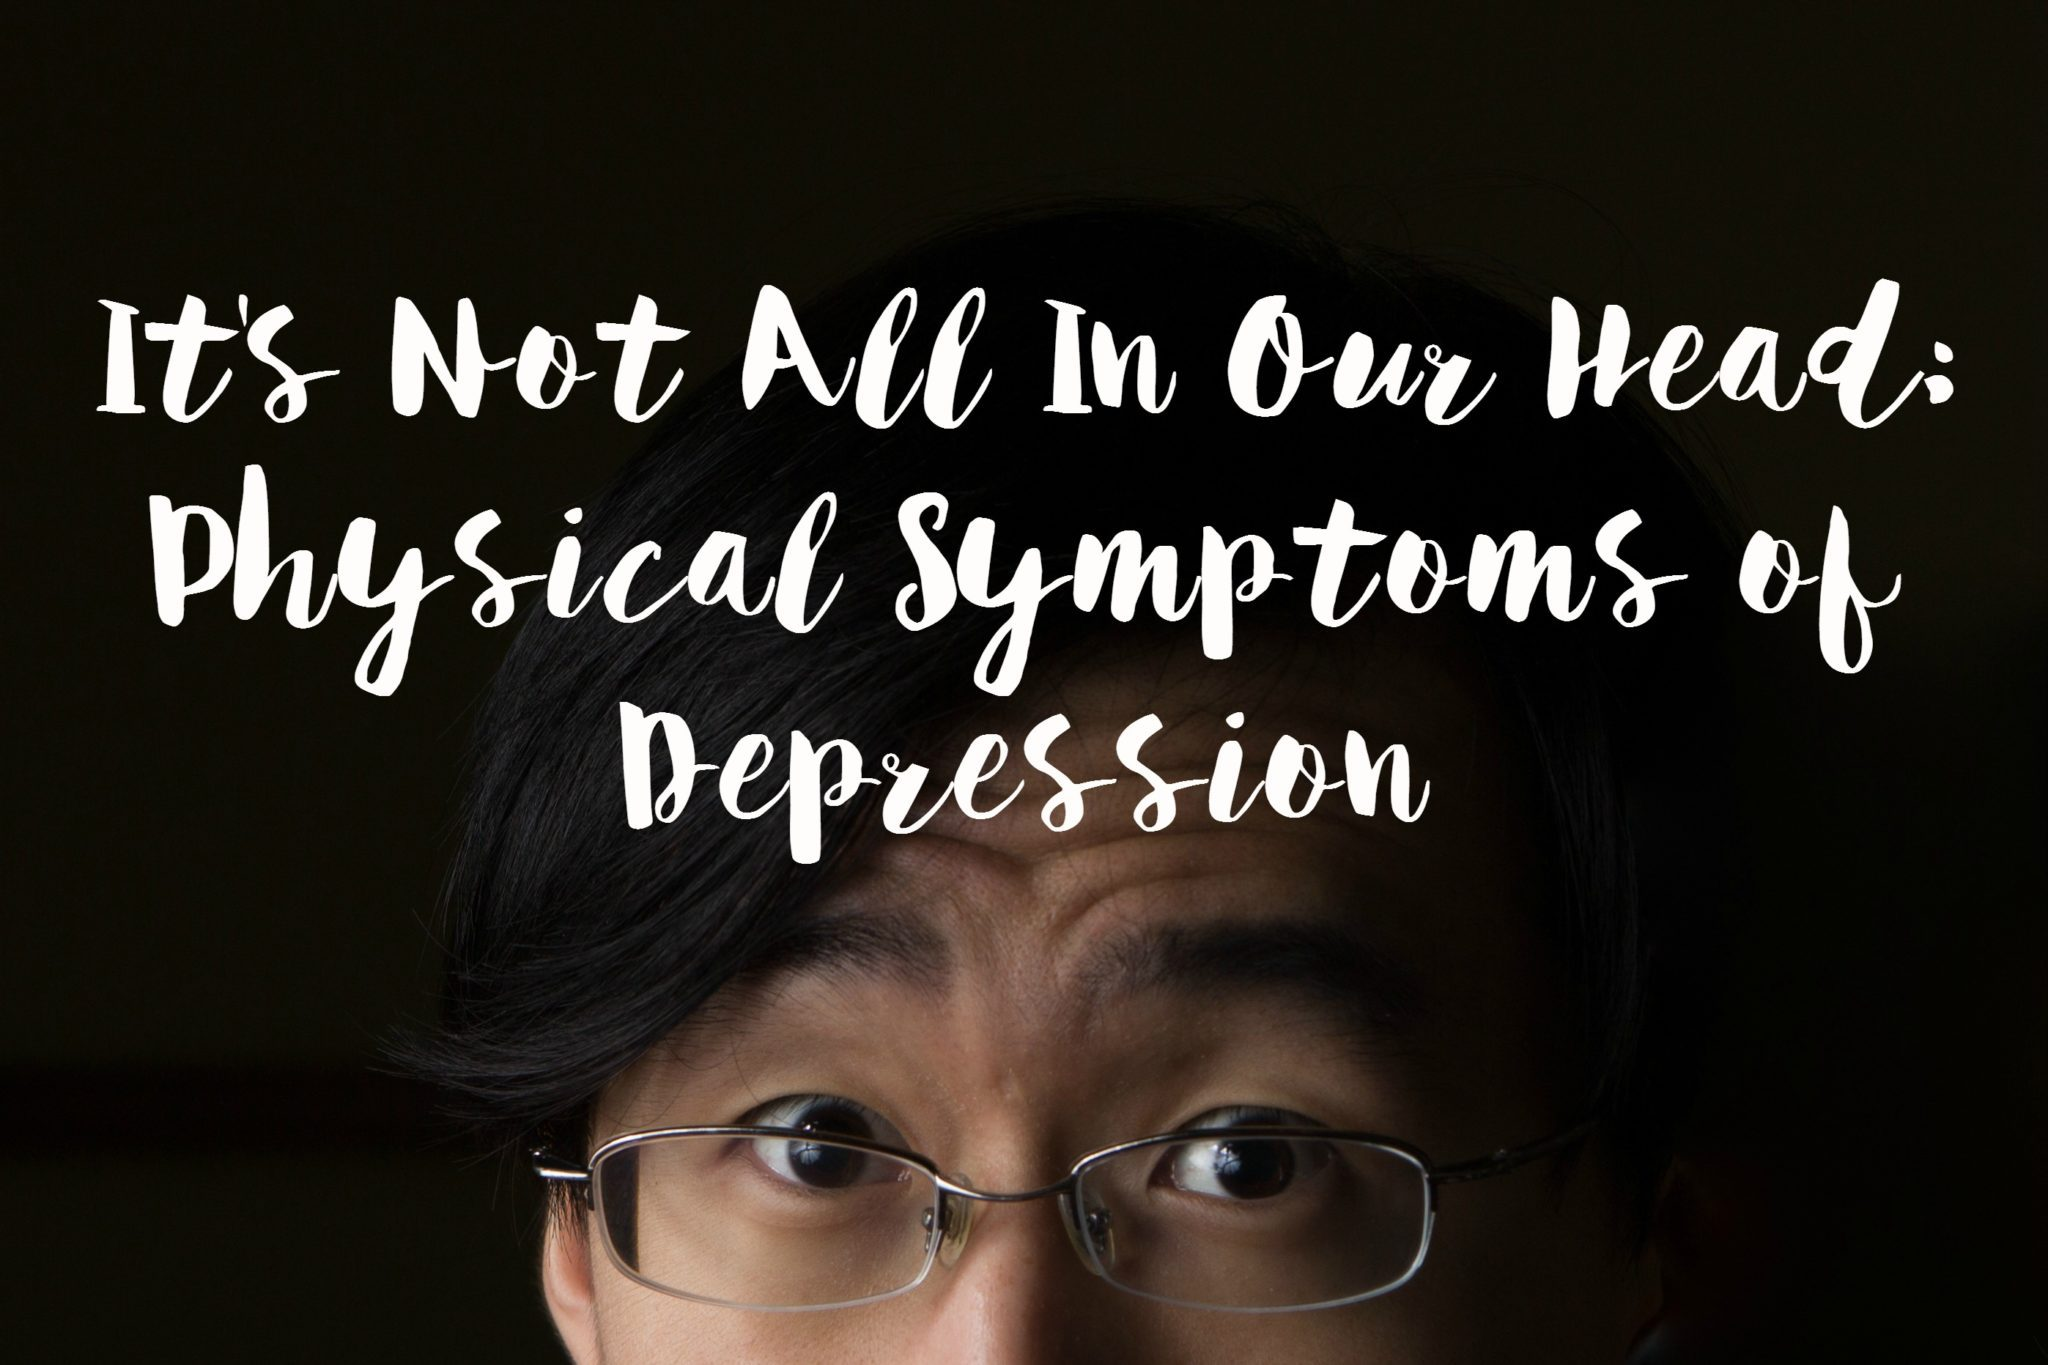 It's Not All In Our Head Physical Symptoms of Depression